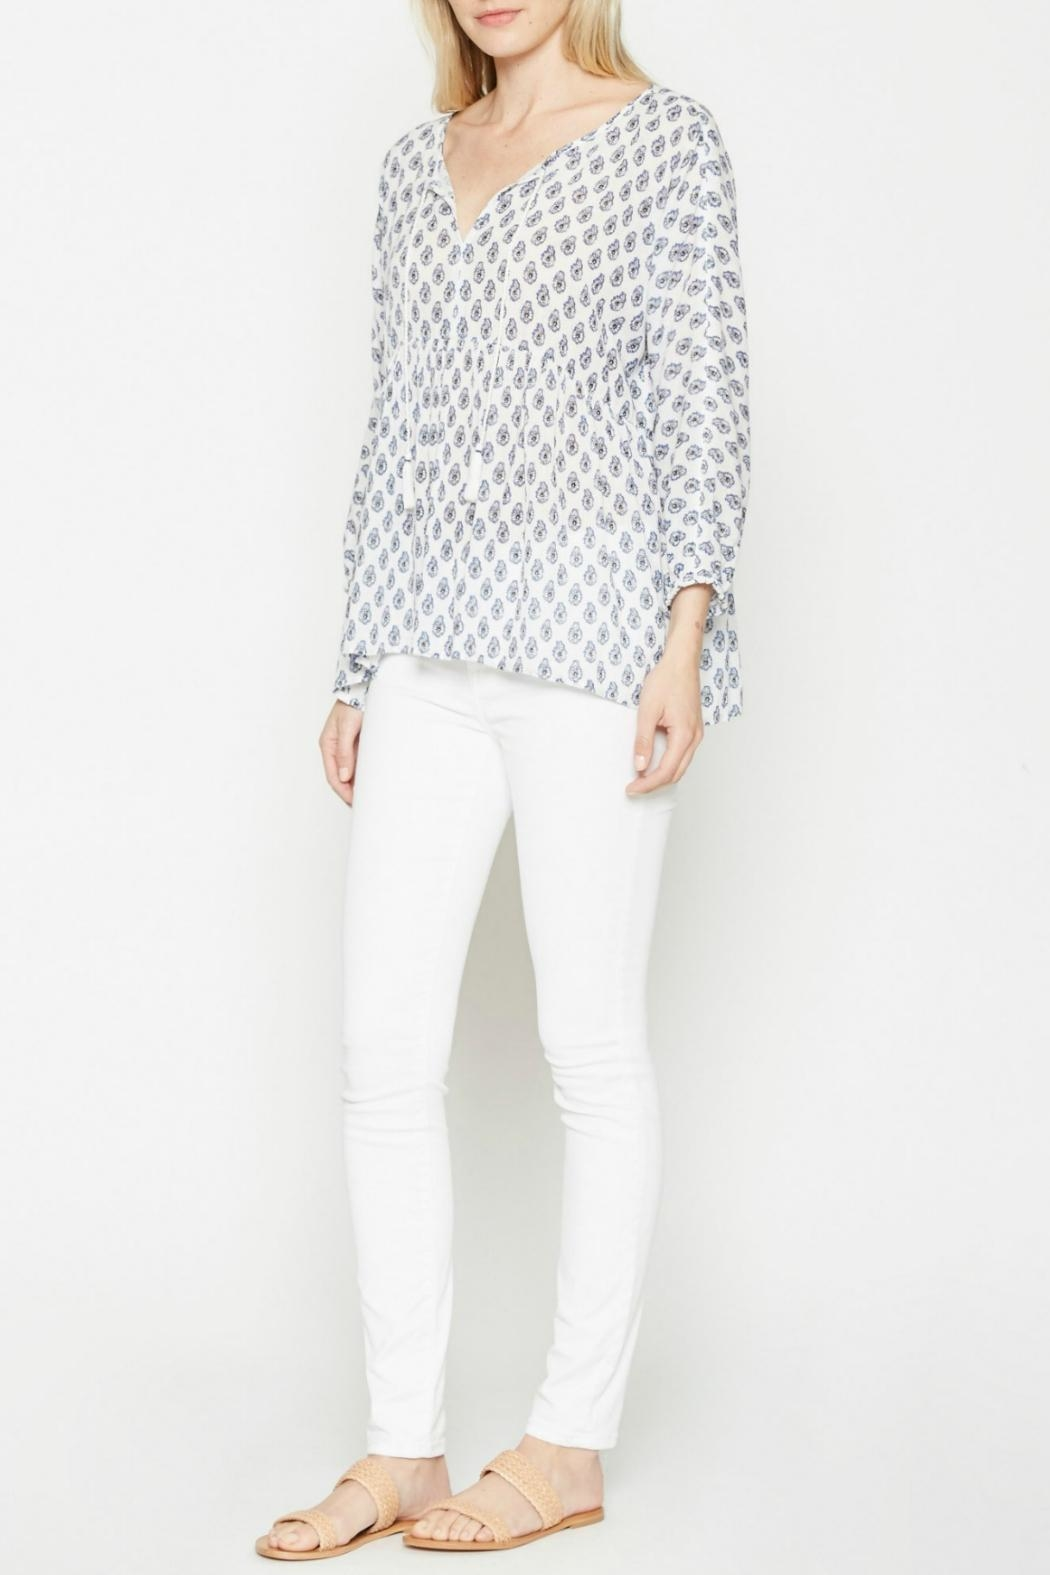 Soft Joie White Patterned Tassle Top - Side Cropped Image